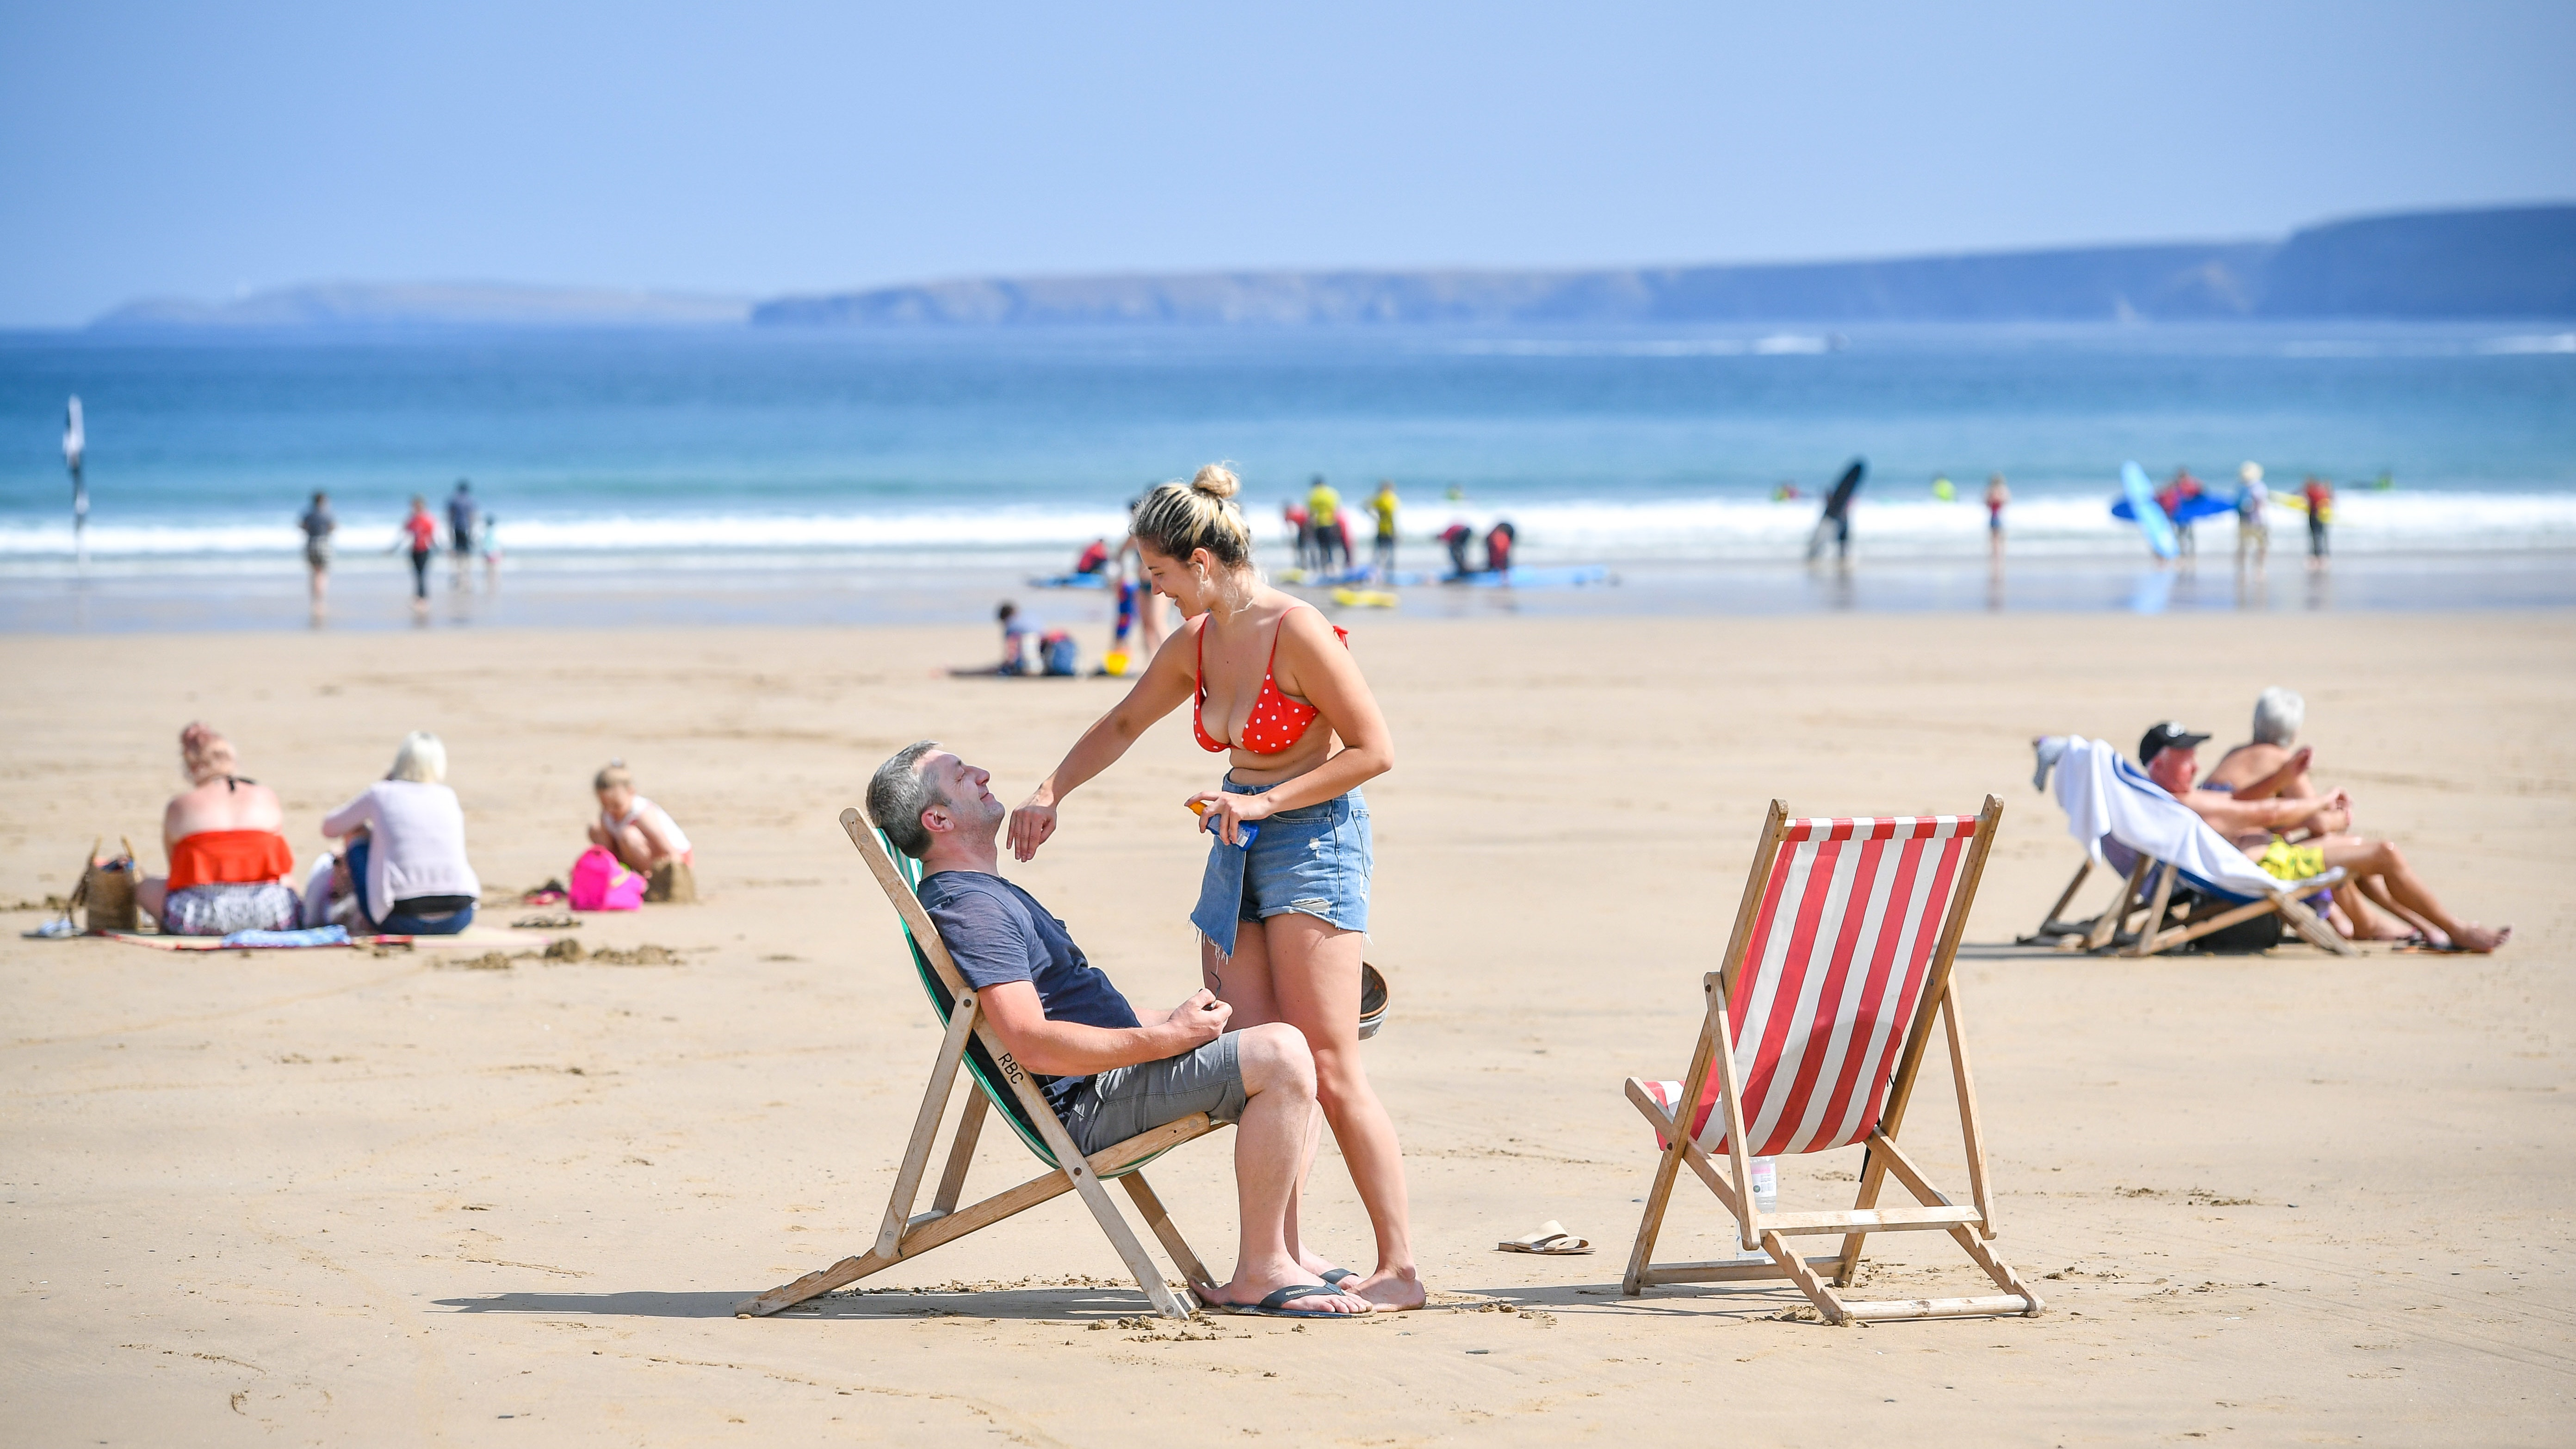 1dea728460a Melanoma skin cancer rates up 45% in decade   BT